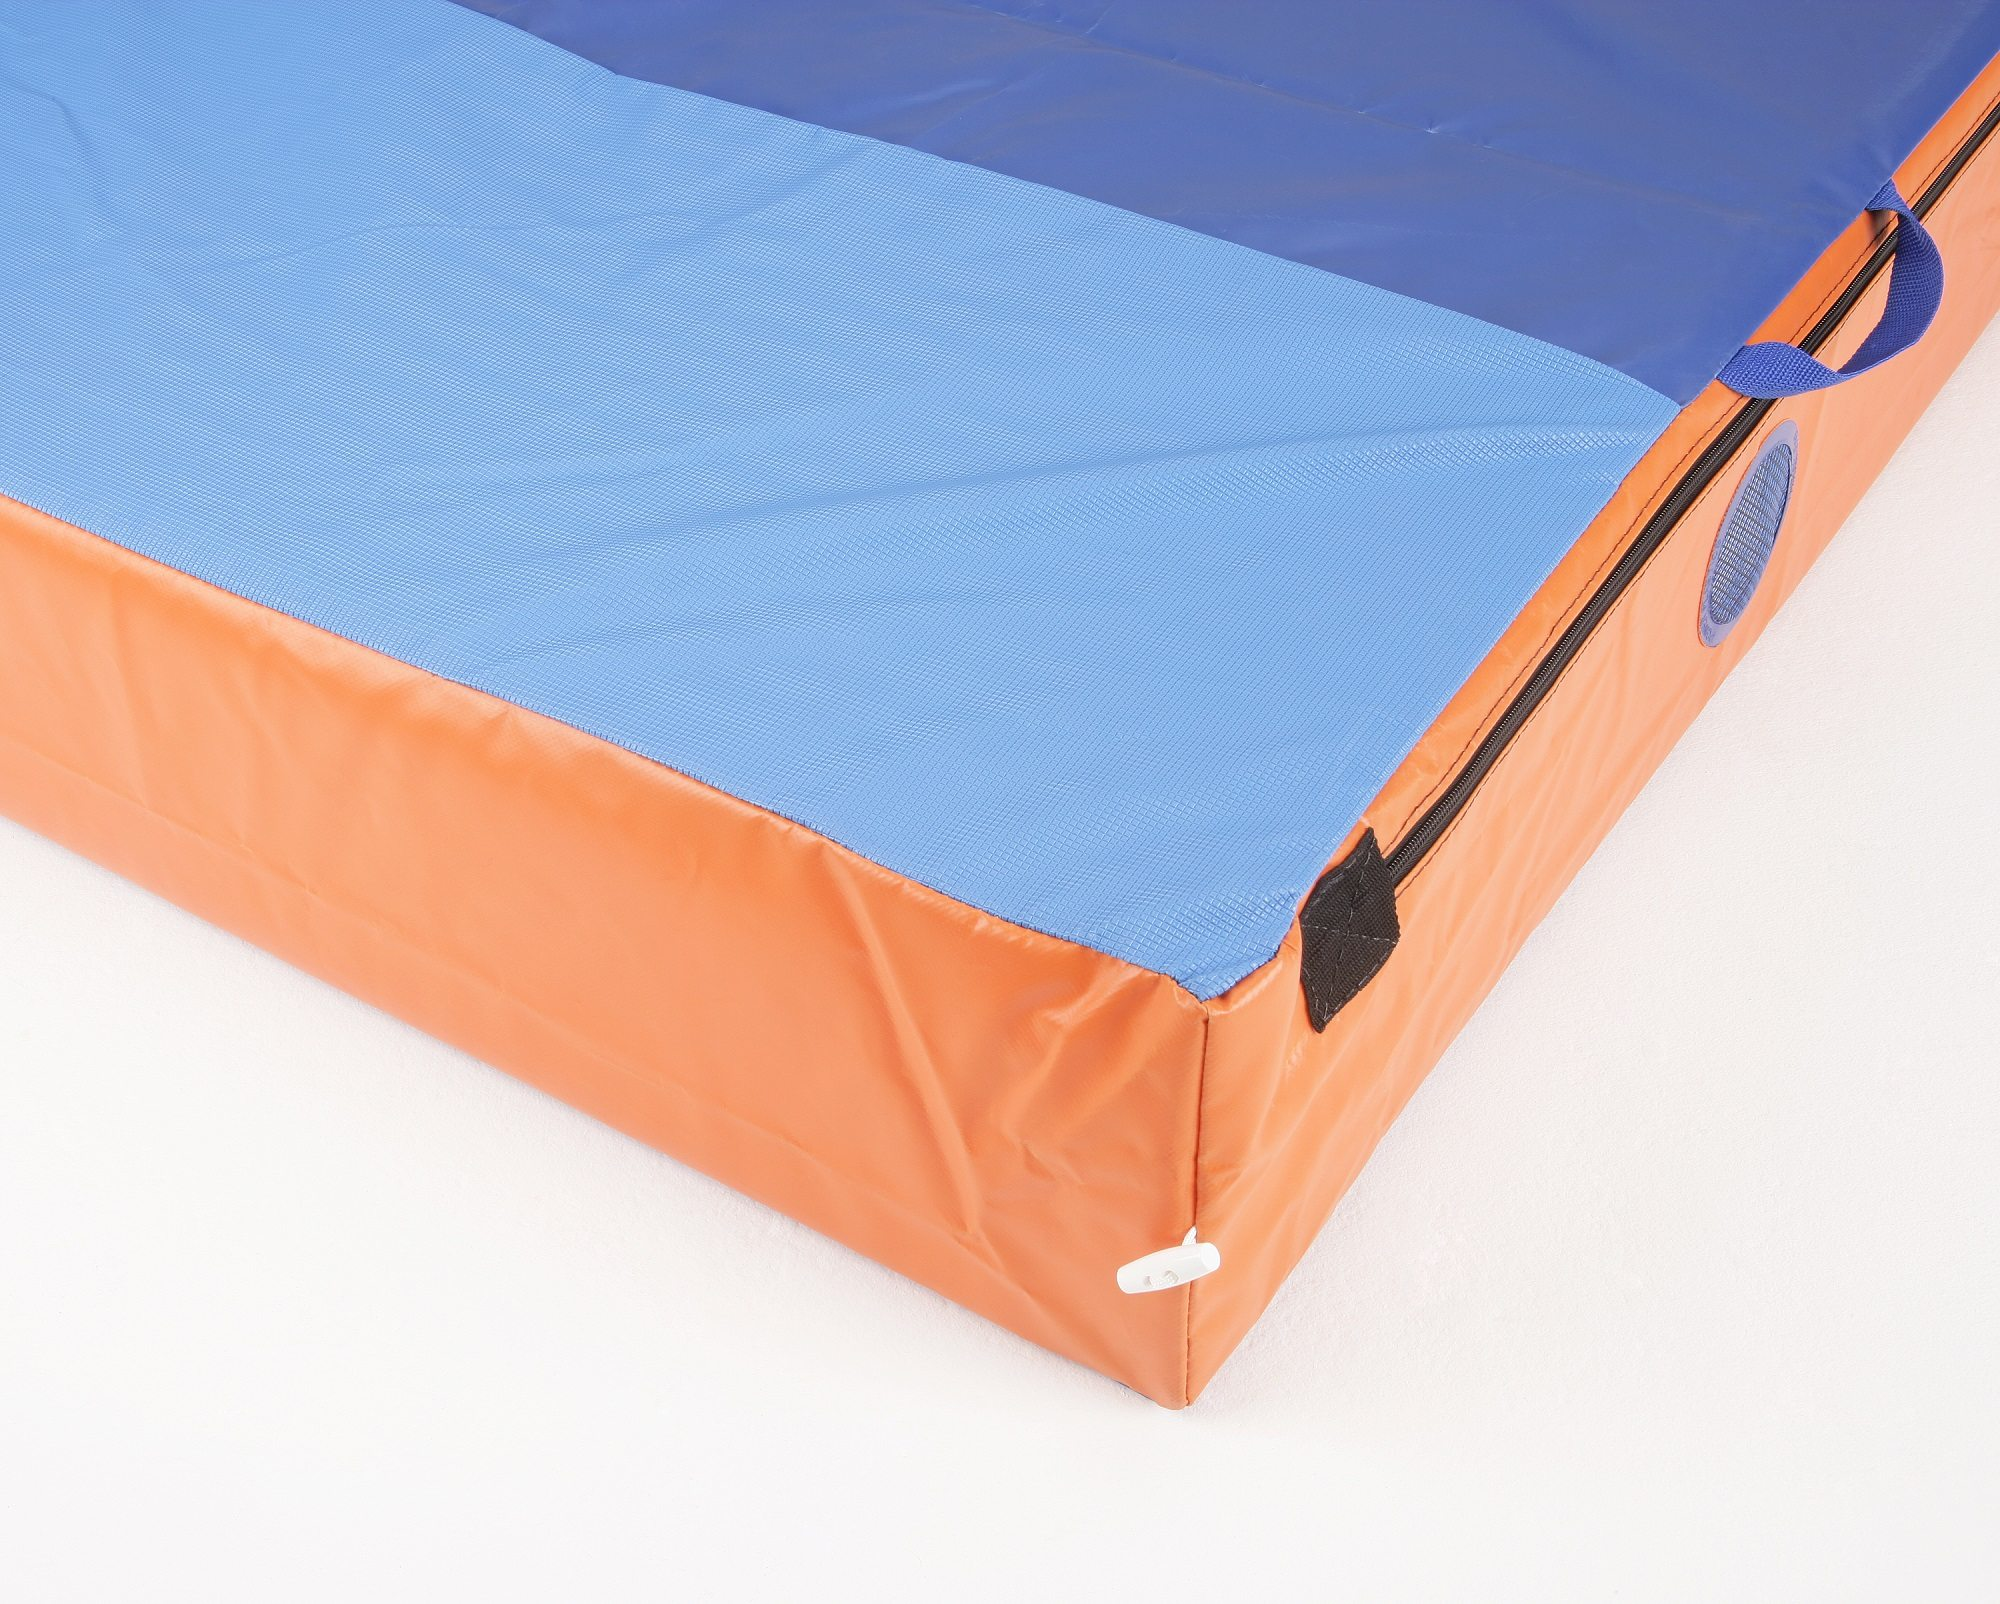 Promat Crash Mats Martial Arts Crash Mats Gymnastics